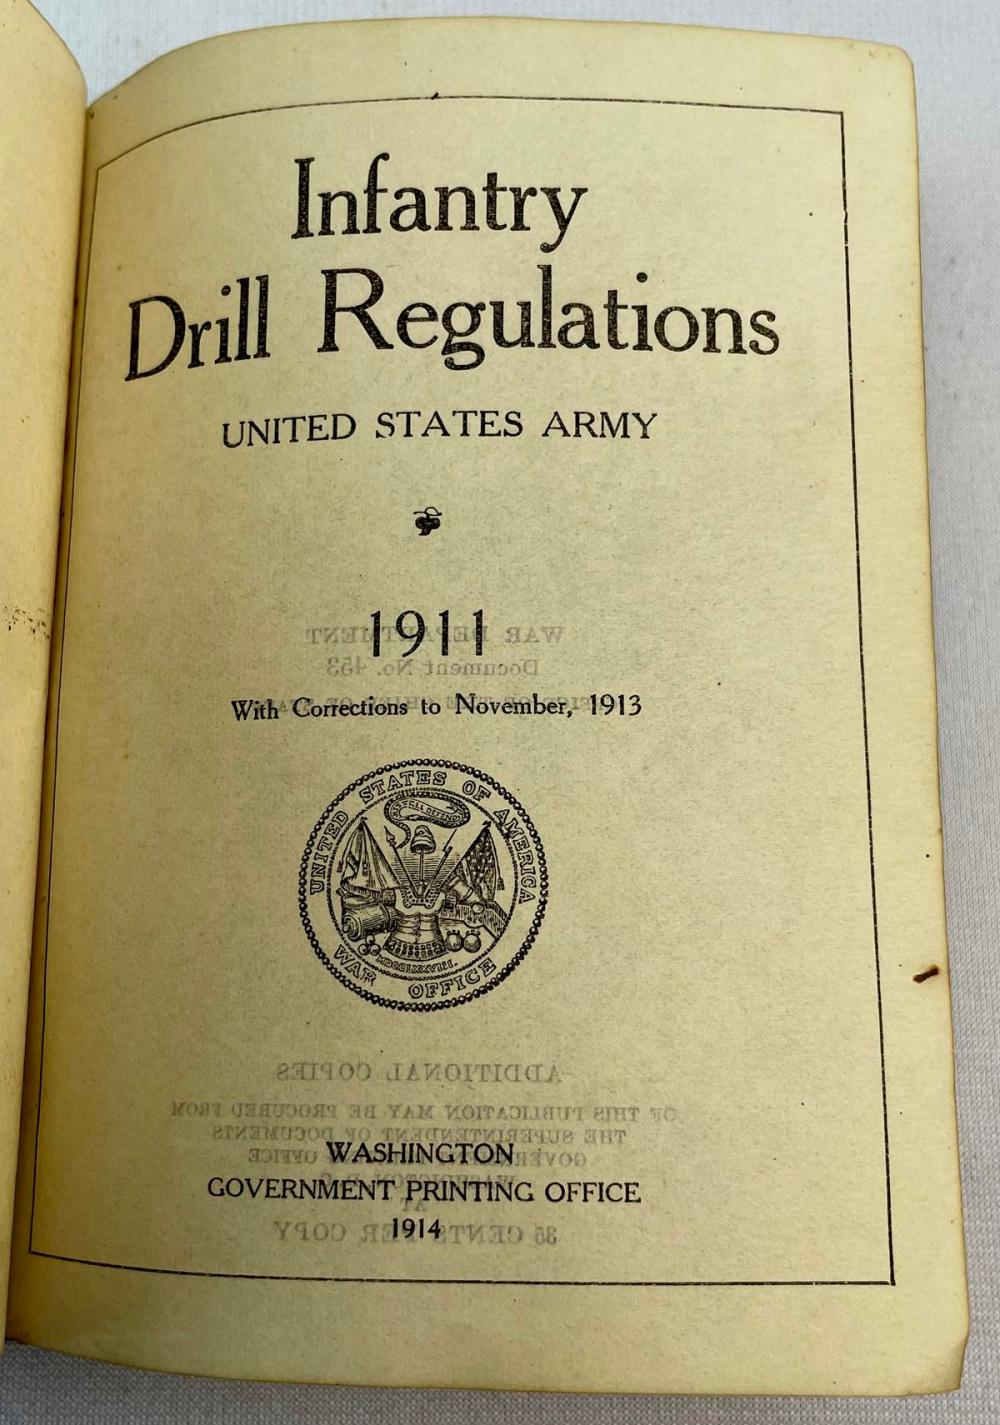 1914 Infantry Drill Regulations: United States Army, 1911 w/ Corrections to November, 1913 ILLUSTRATED